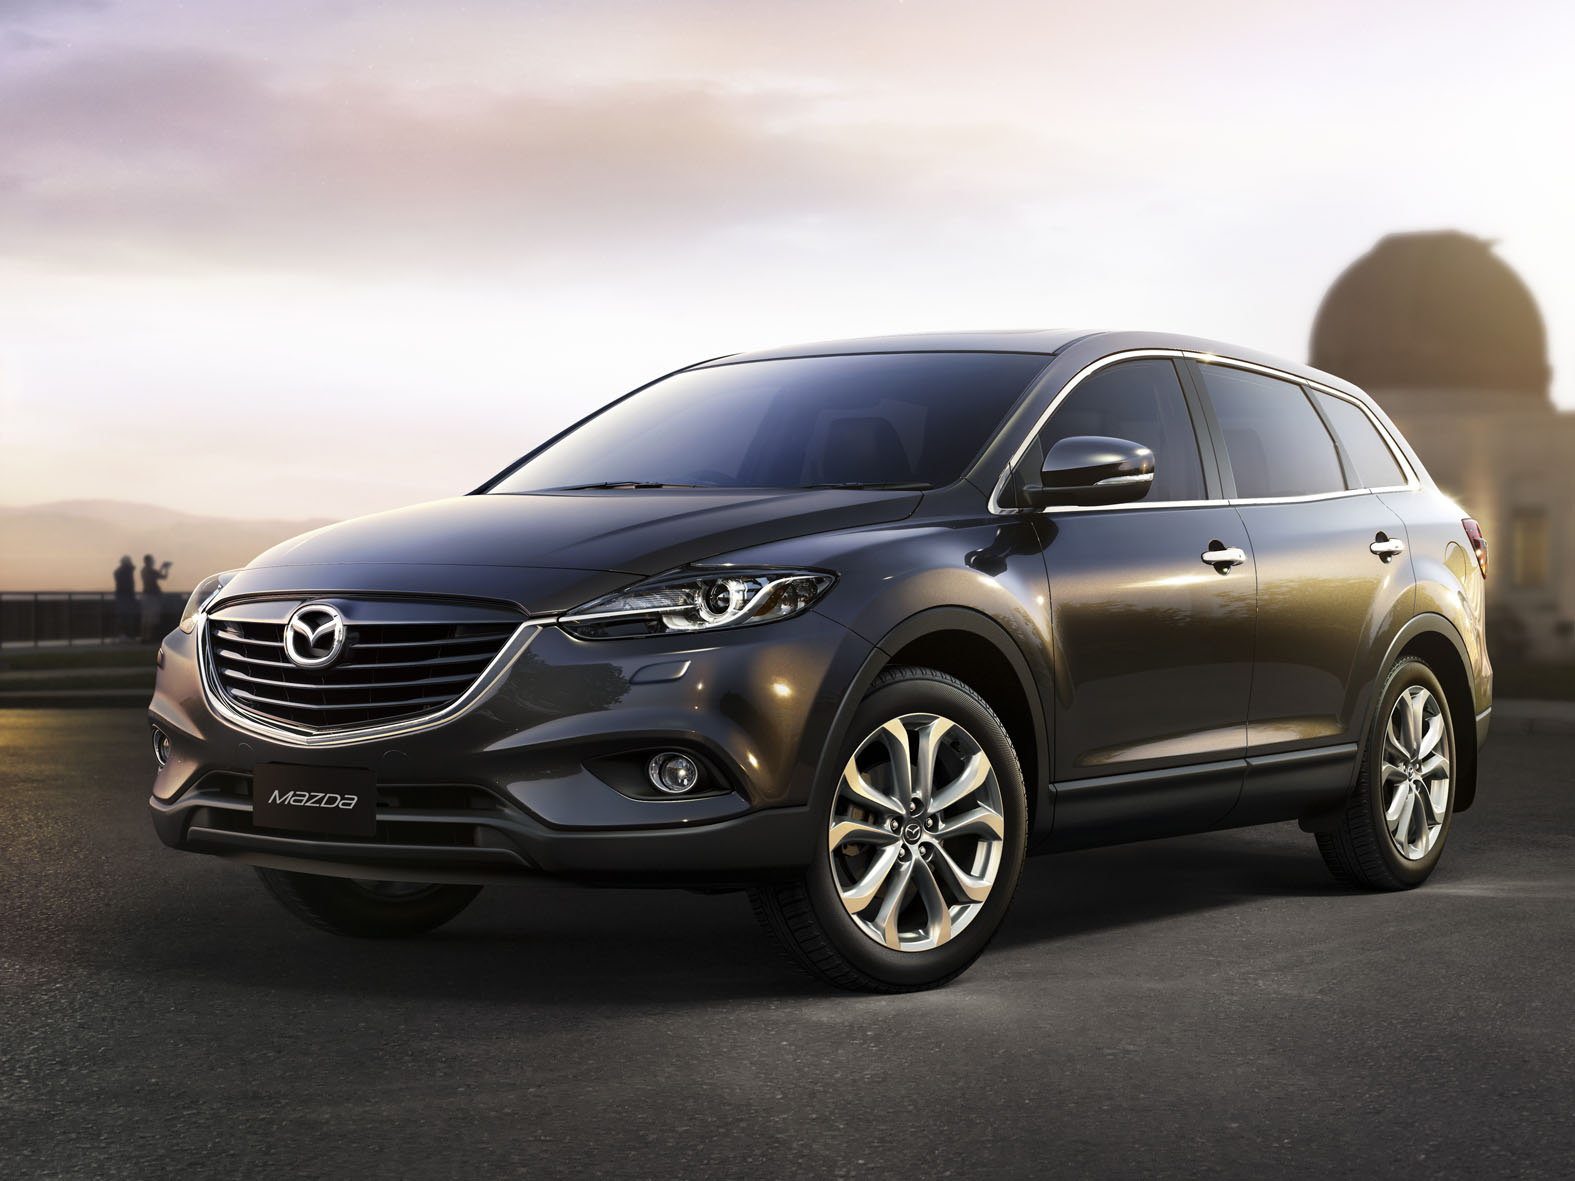 2013 Mazda Cx 9 Review Ratings Specs Prices And Photos